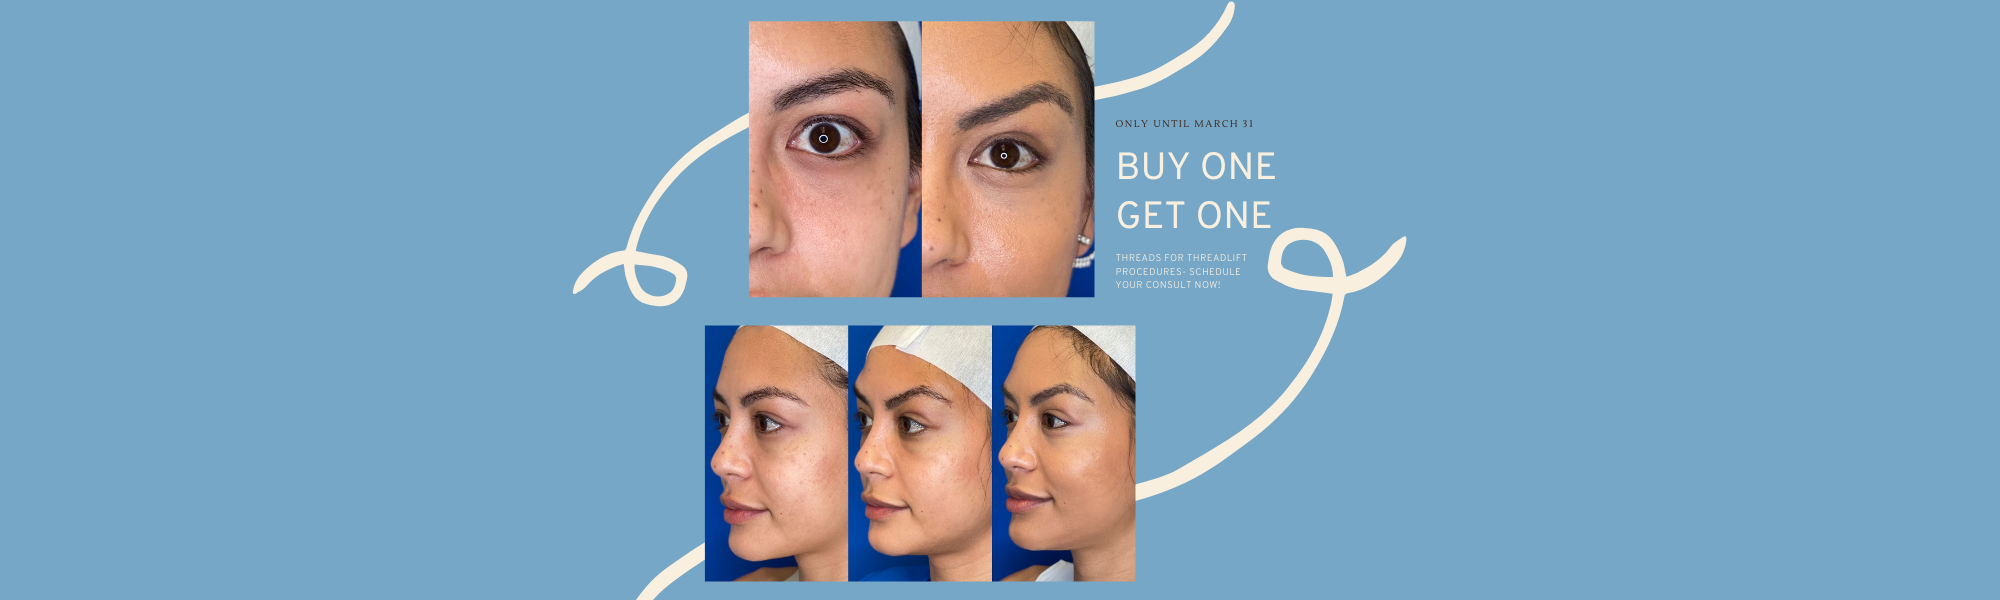 Juvederm Treatment Threadlift Promo Banner for Forever Young Aesthetics in Tampa FL